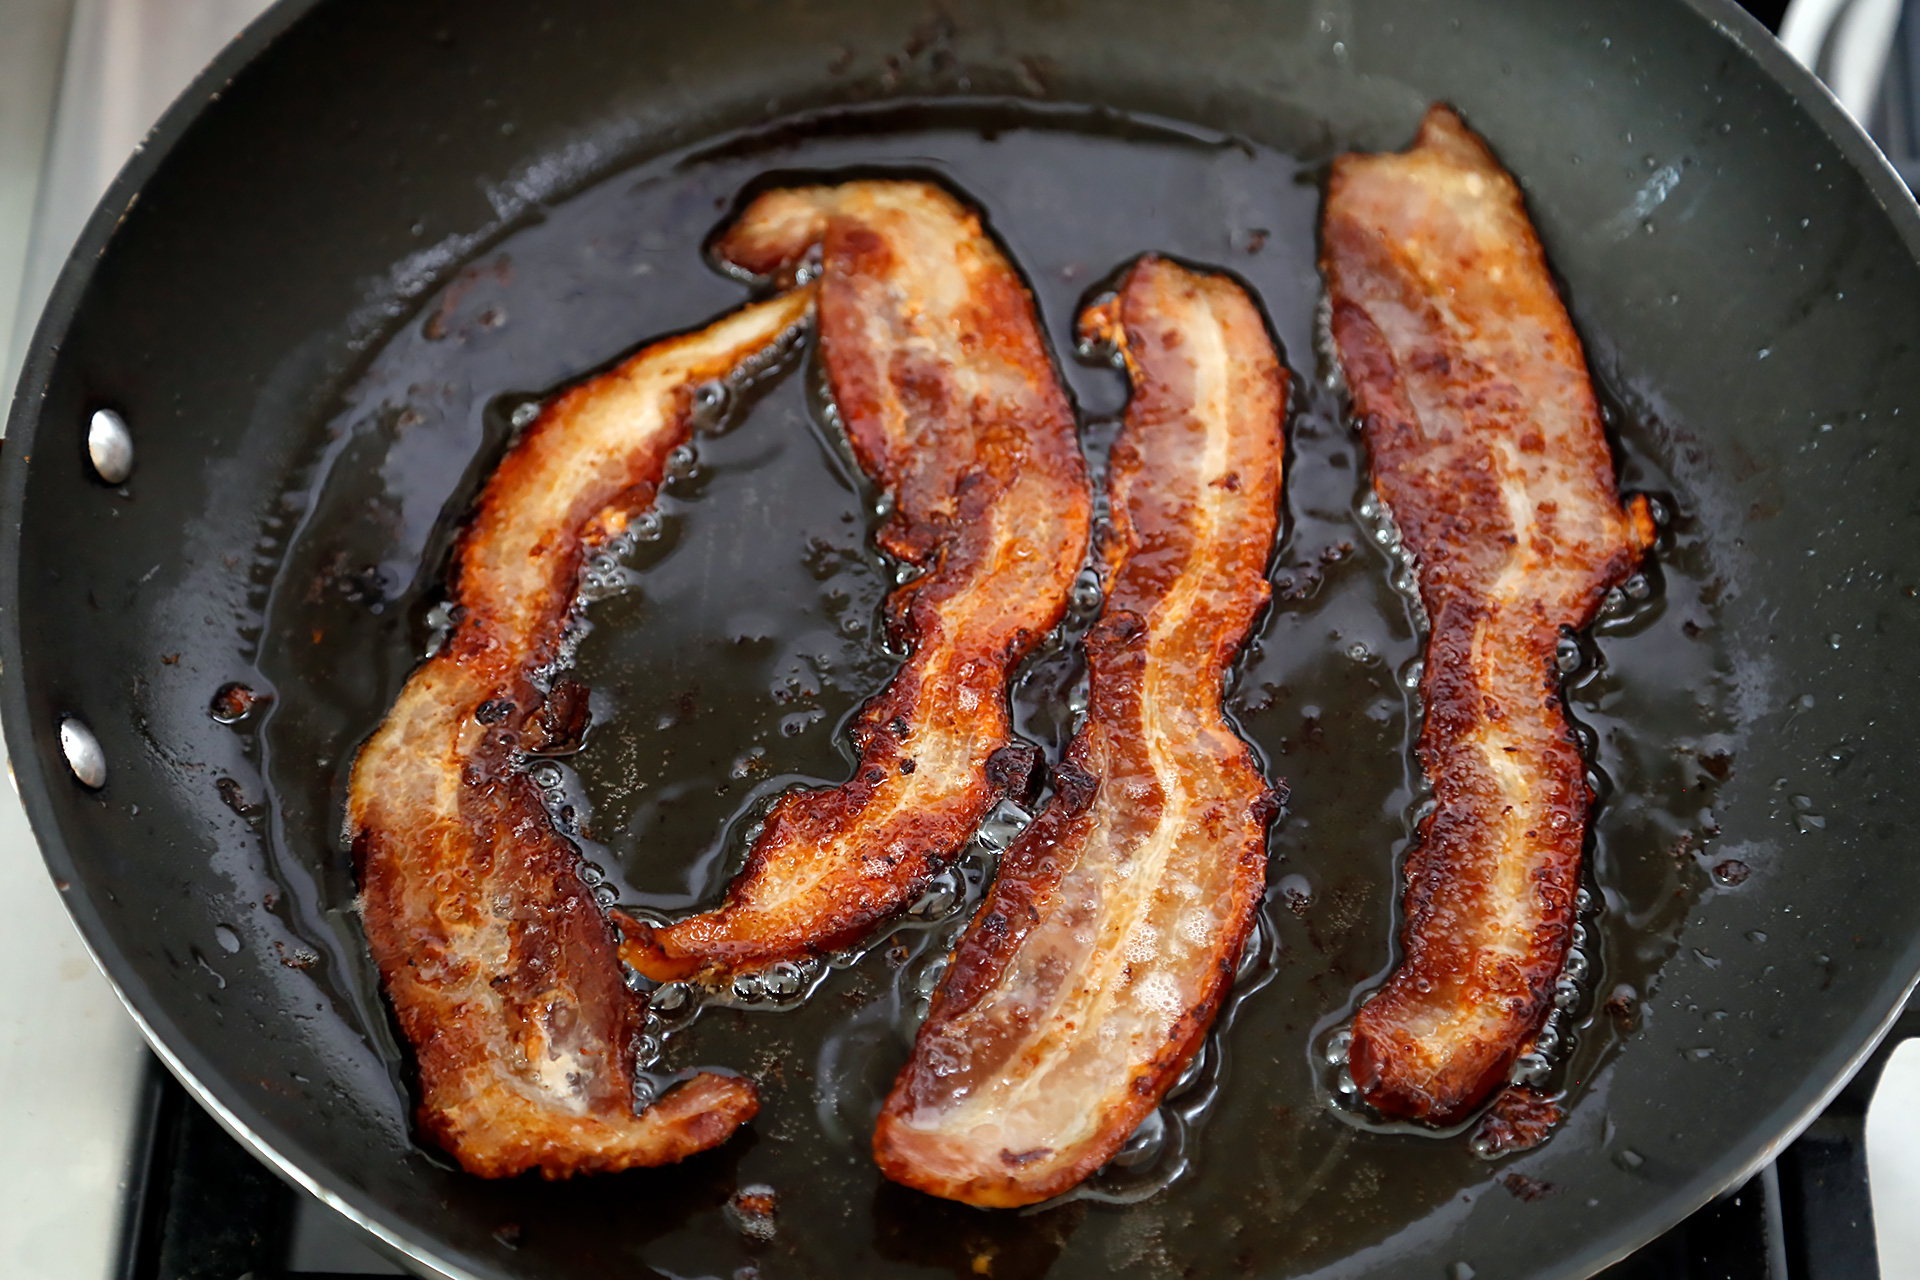 In a frying pan over medium heat, fry the bacon until crisp. Drain on paper towels.